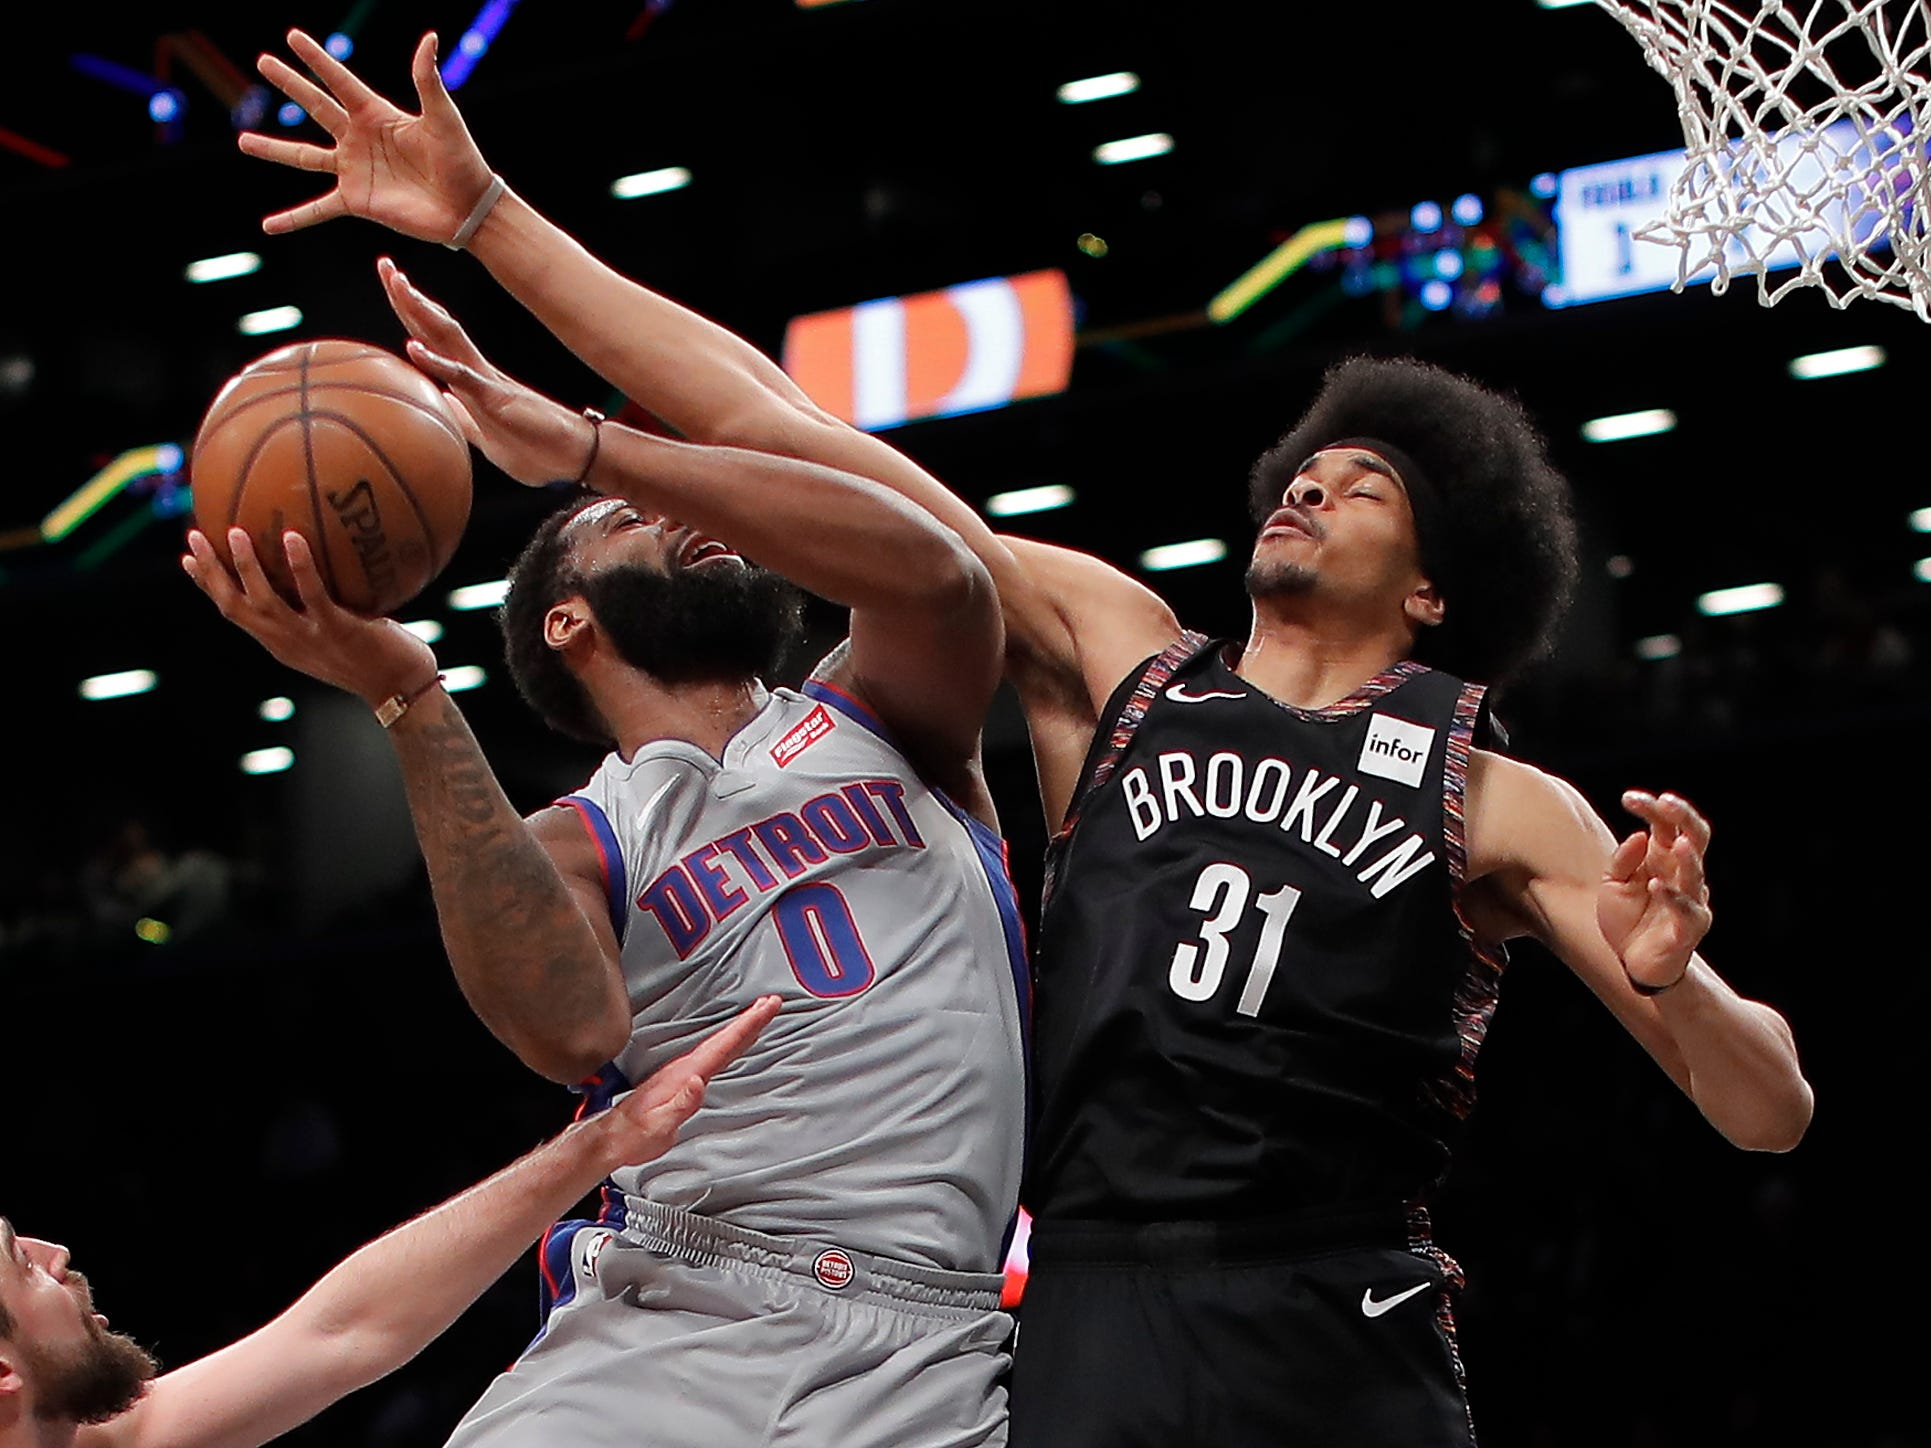 Detroit Pistons center Andre Drummond (0) puts up a shot against Brooklyn Nets center Jarrett Allen (31) during the first quarter, Monday, March 11, 2019, in New York.